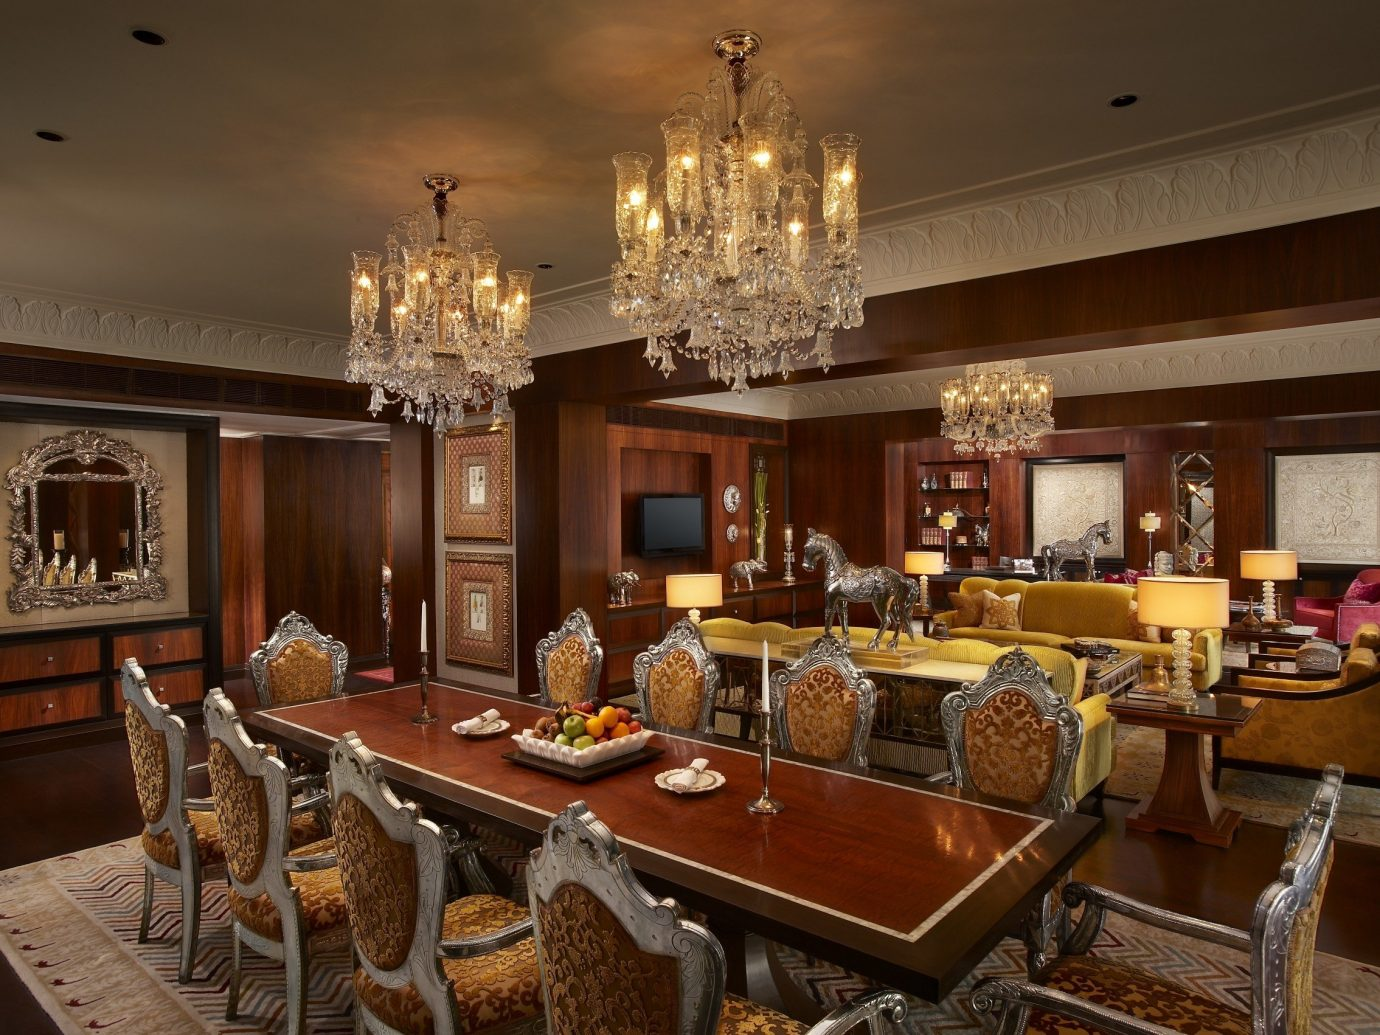 Hotels Luxury Travel indoor dining room room ceiling interior design counter living room restaurant Bar table estate